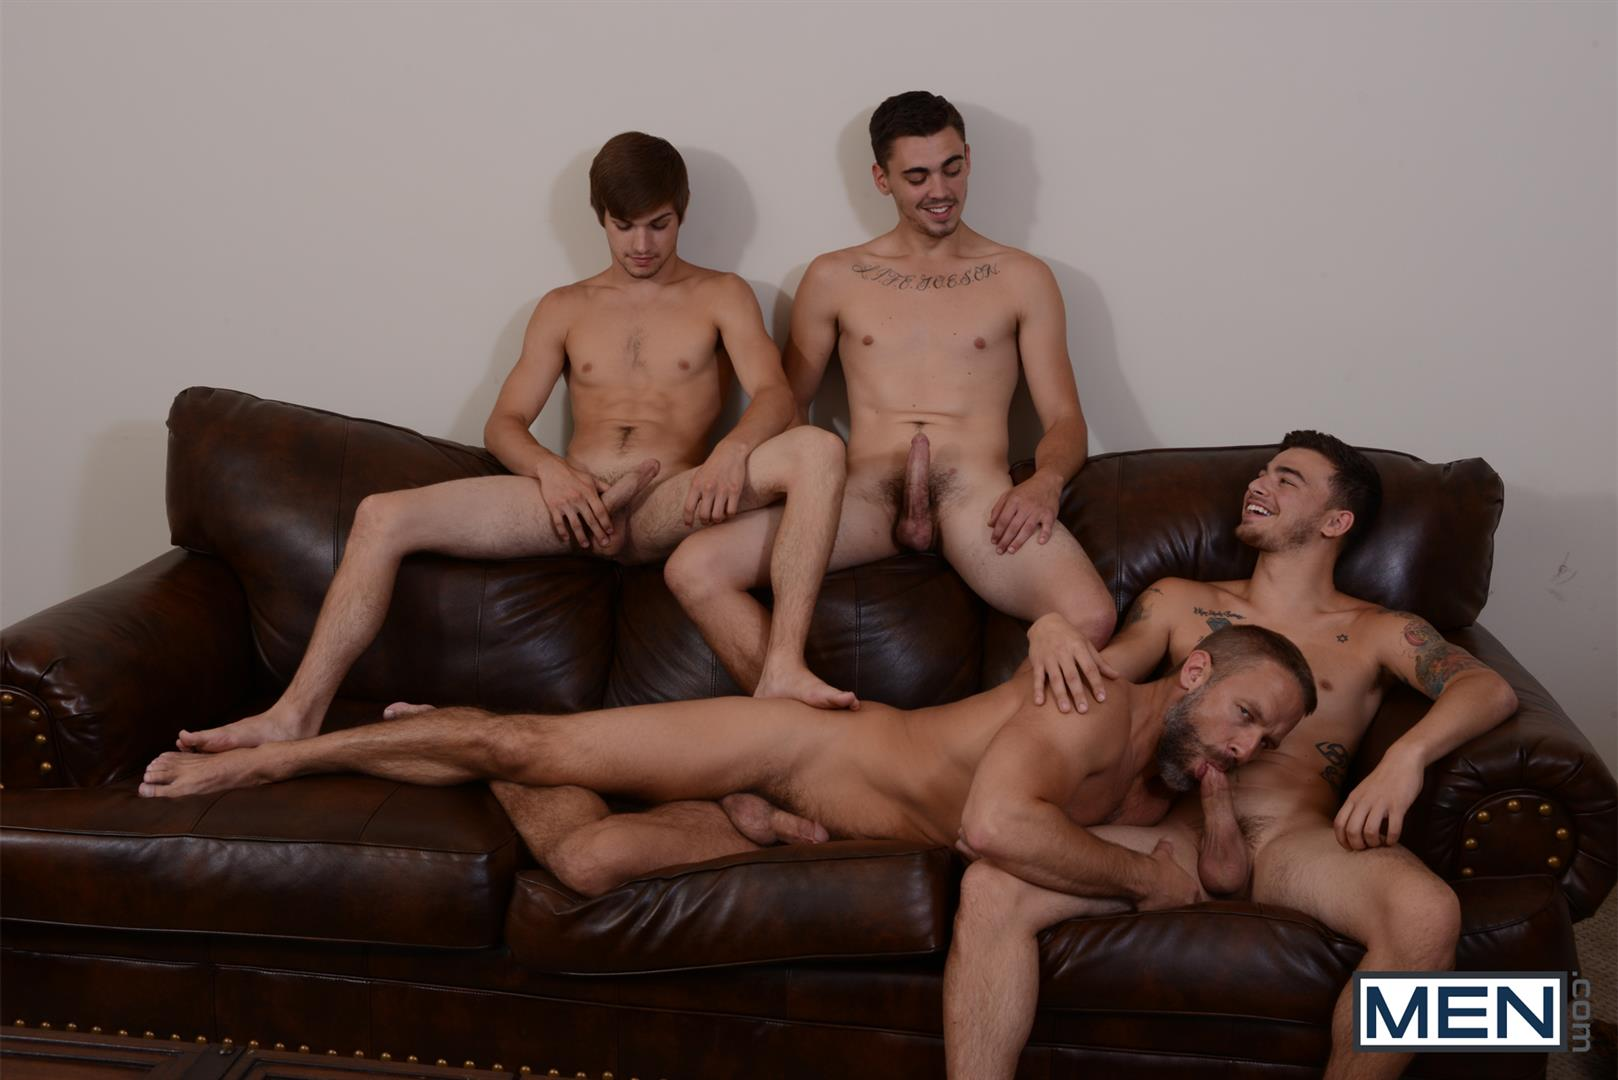 Men Jizz Orgy Asher Hawk and Dirk Caber and Johnny Rapid and Trevor Spade Triple Penetrated In the Ass Amateur Gay Porn 09 Stepfather Dirk Caber Gets TRIPLE Penetrated By His Stepsons